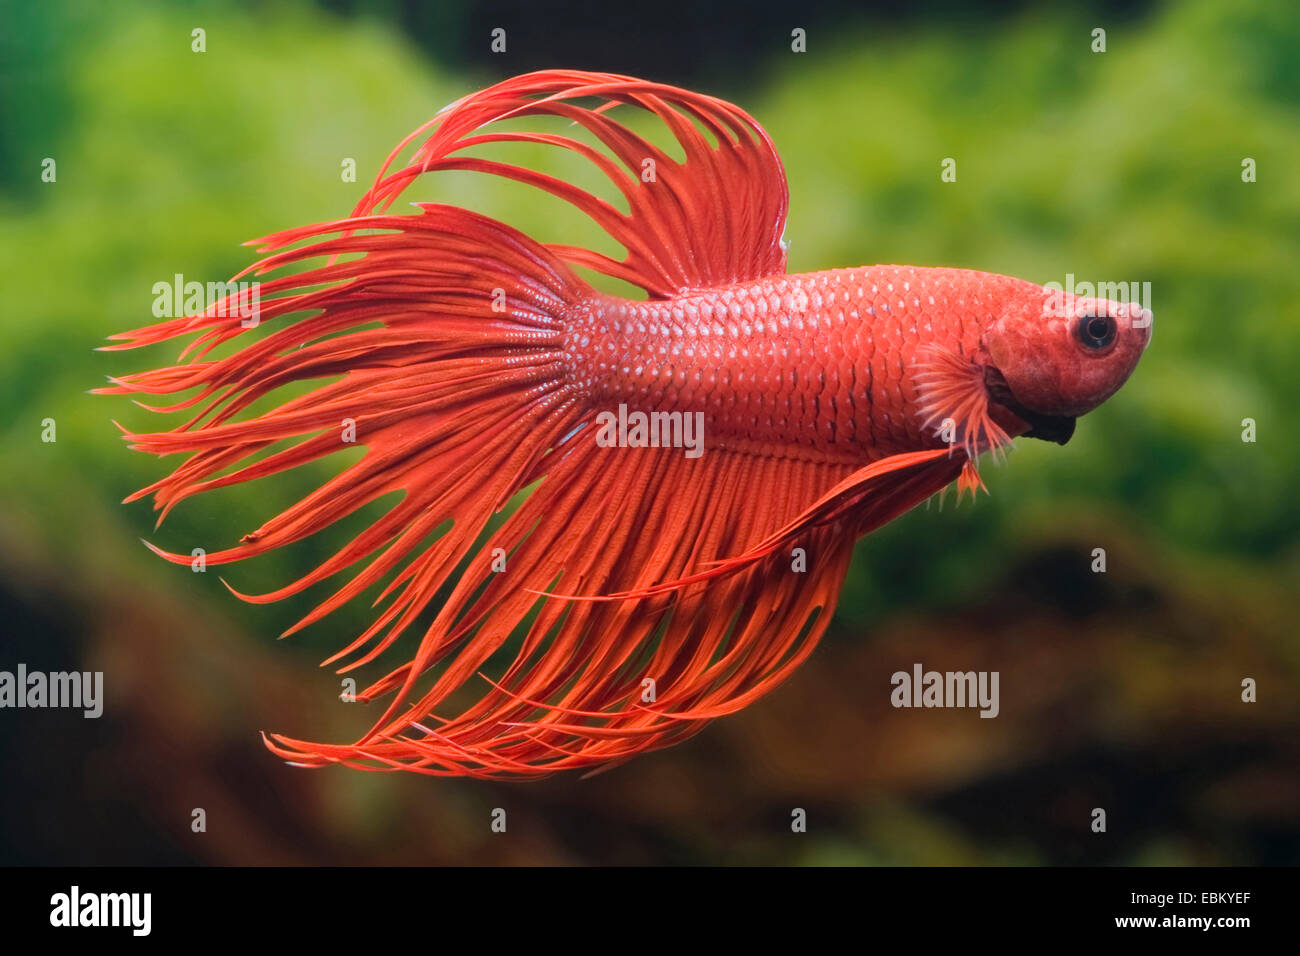 Siamese fighting fish, Siamese fighter (Betta splendens), breed Crown Tail Rot - Stock Image